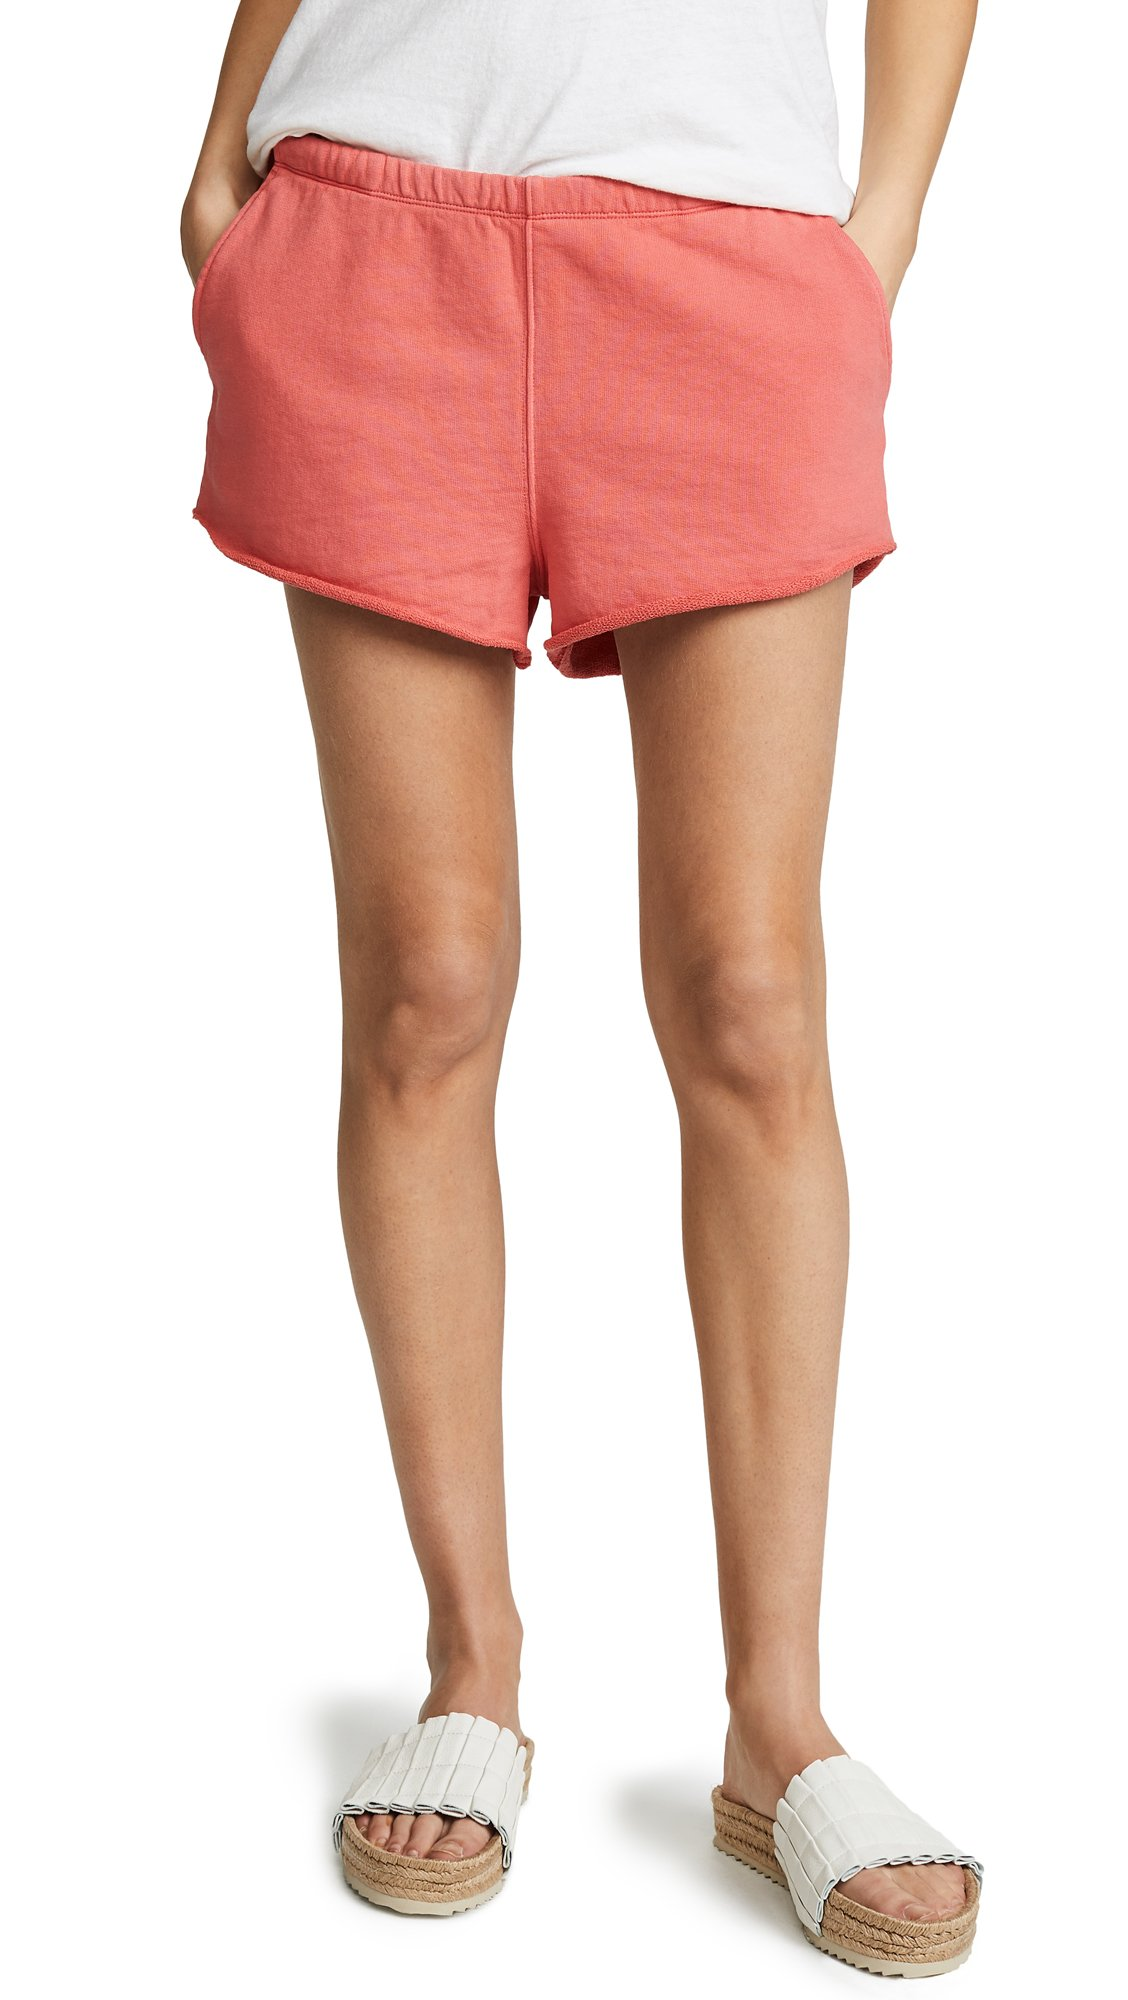 FRAME Women's Terry Track Shorts, Faded Summer Red, Large